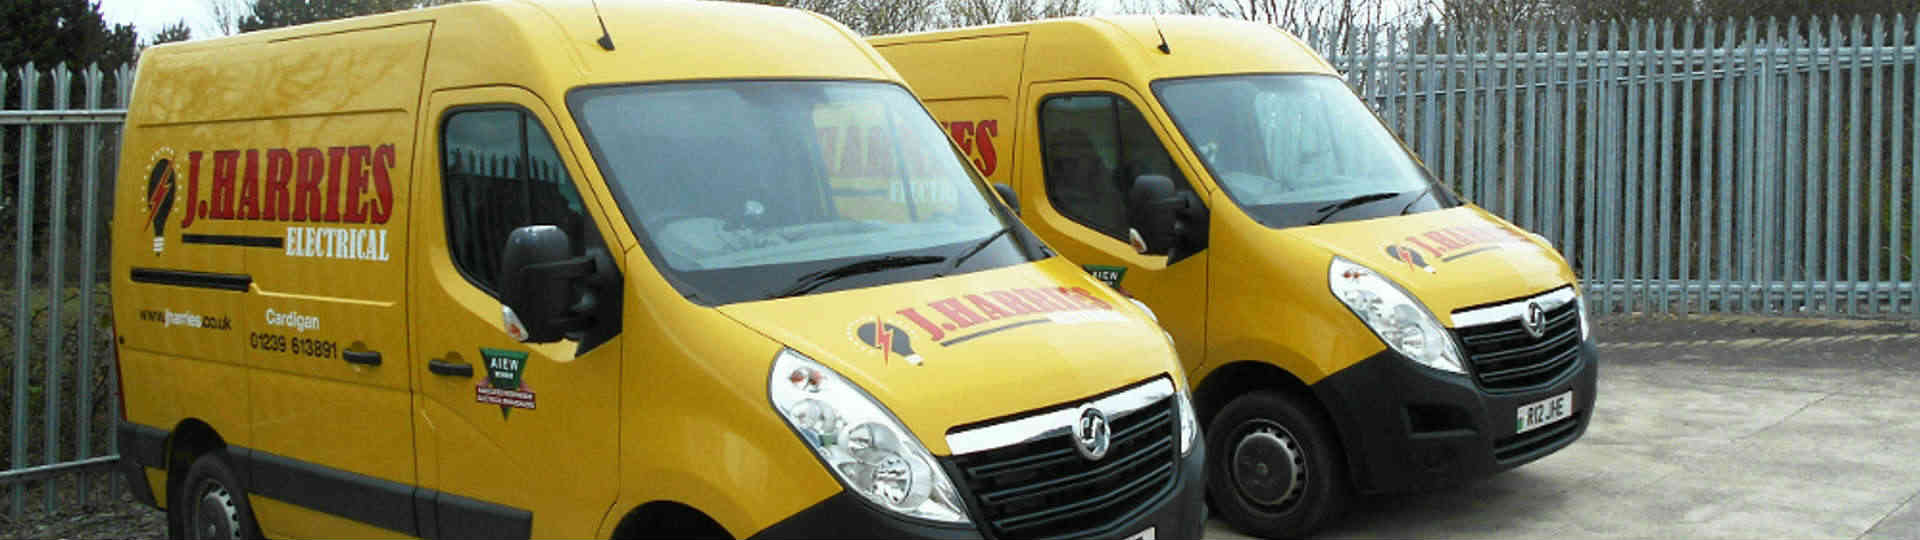 electrical supplies cardigan delivery vans